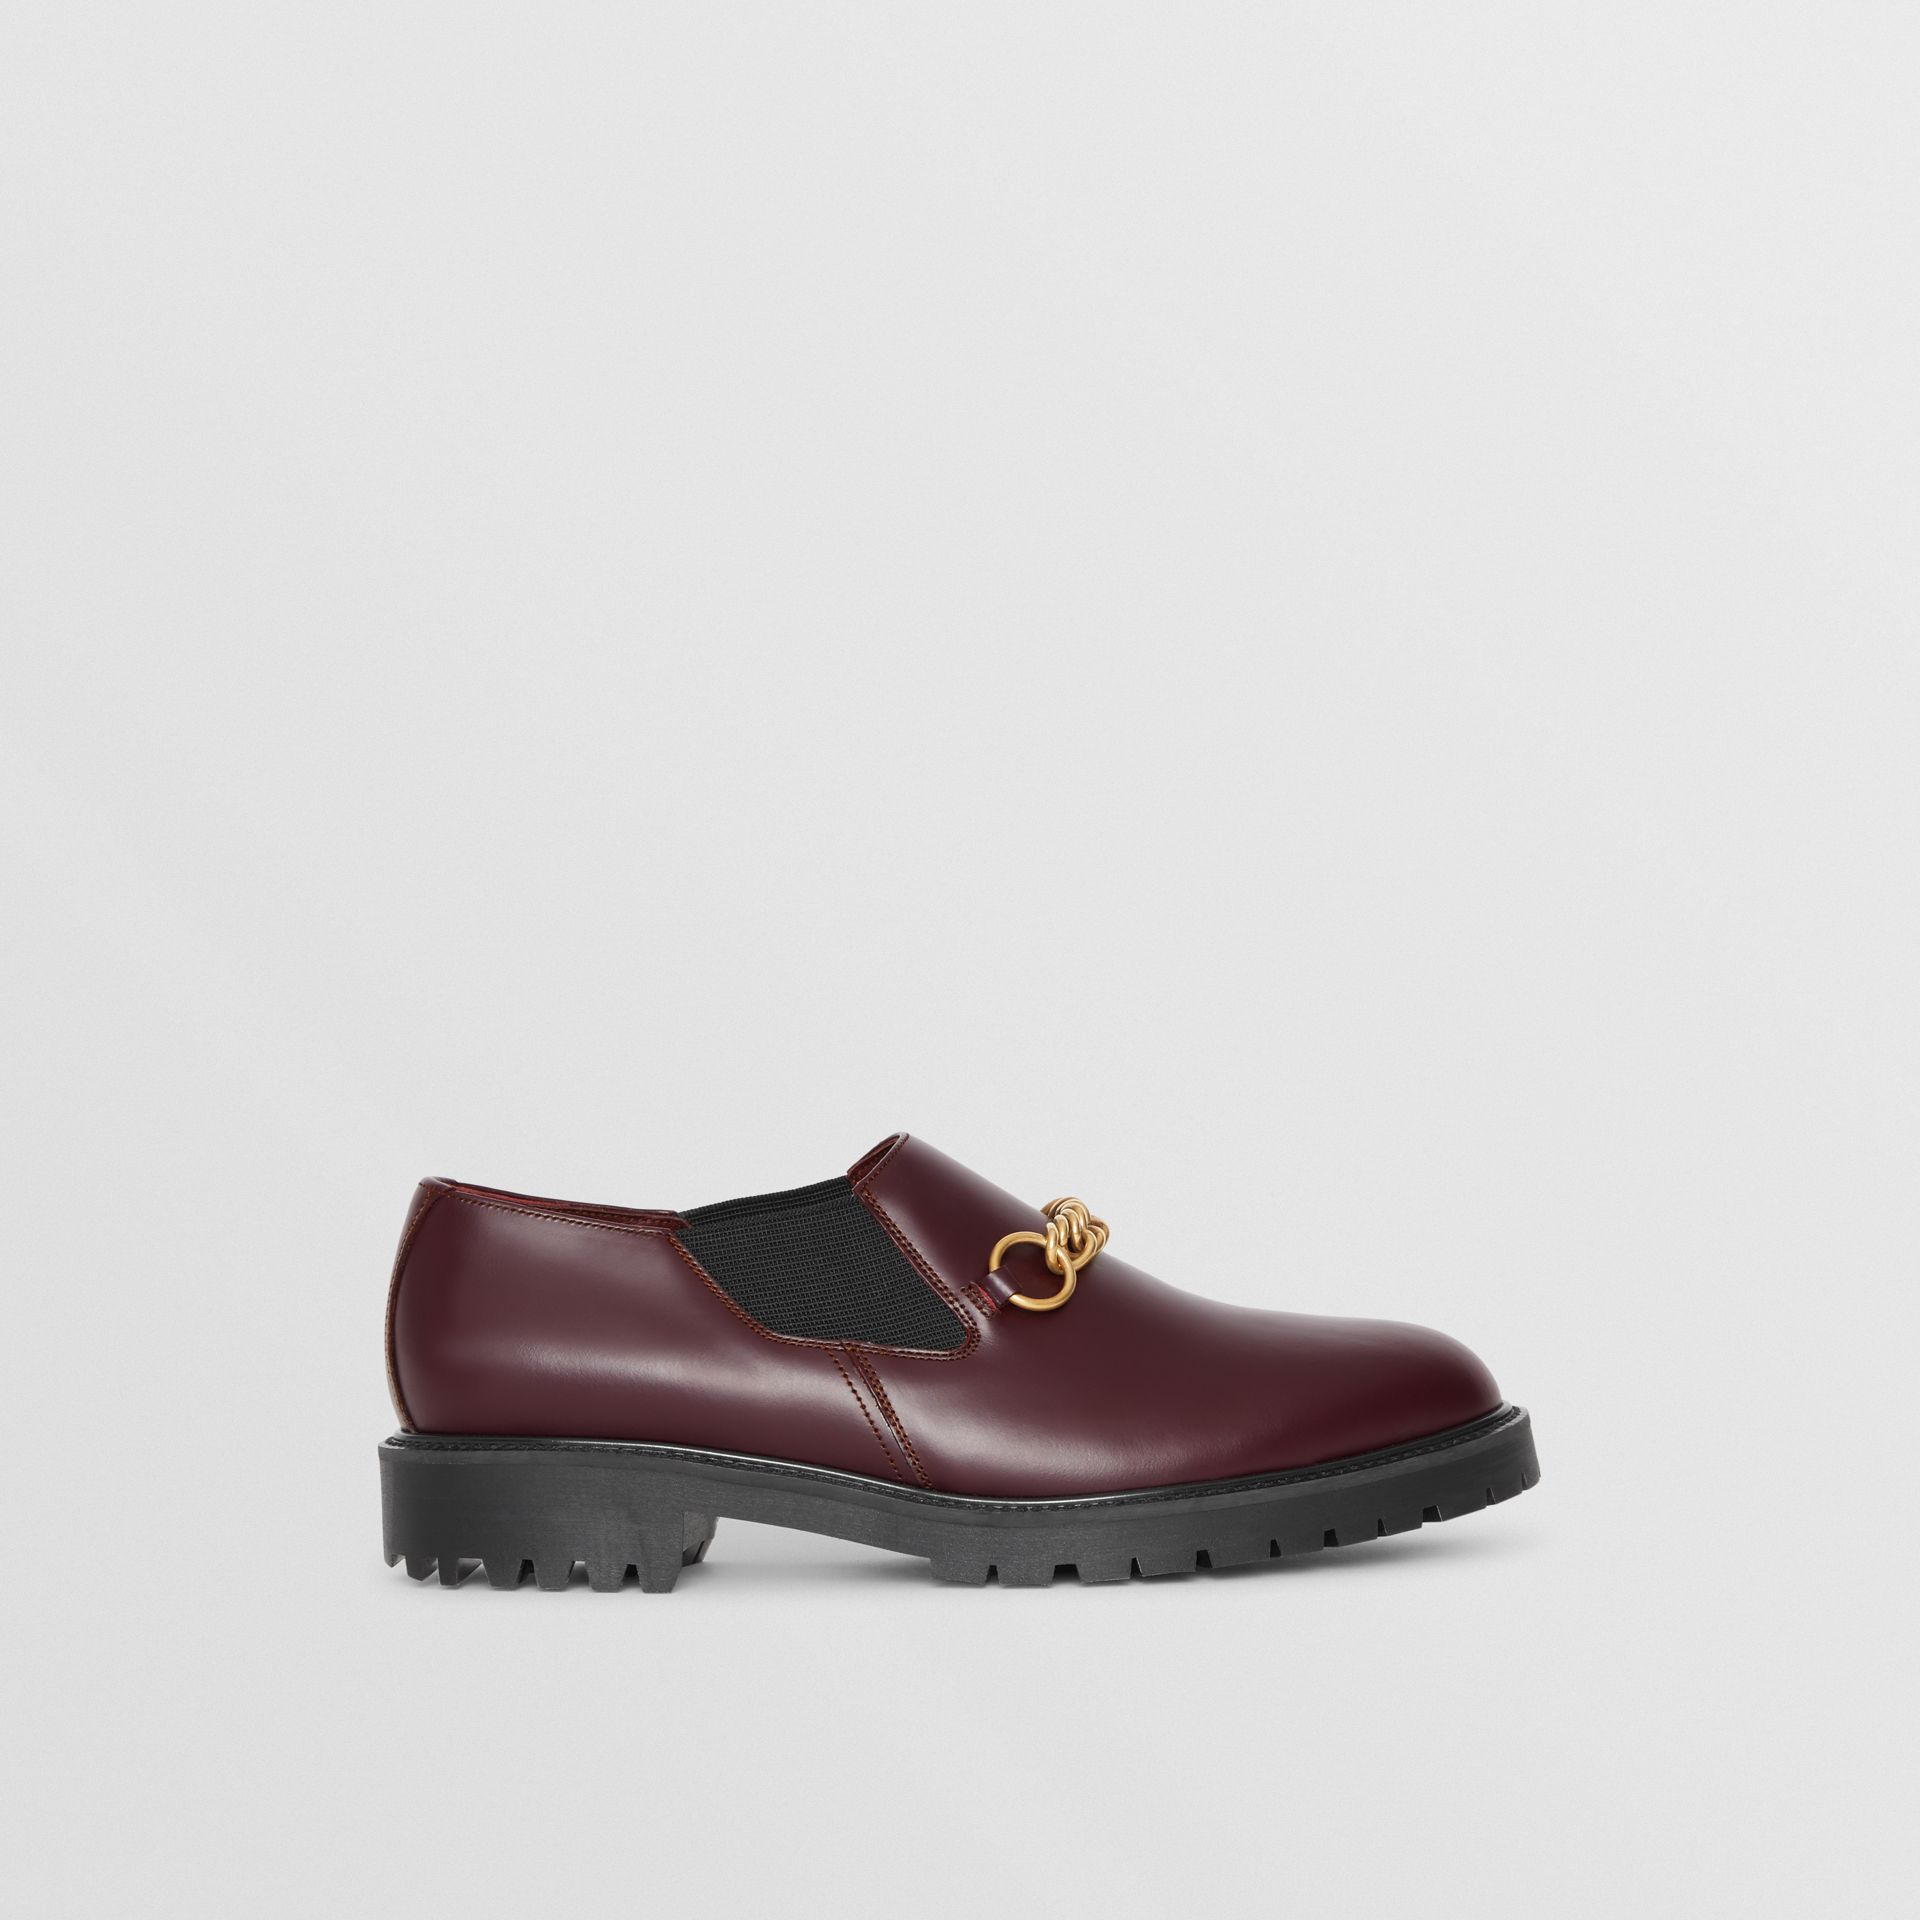 Link Detail Leather Shoe in Oxblood - Men | Burberry - gallery image 4